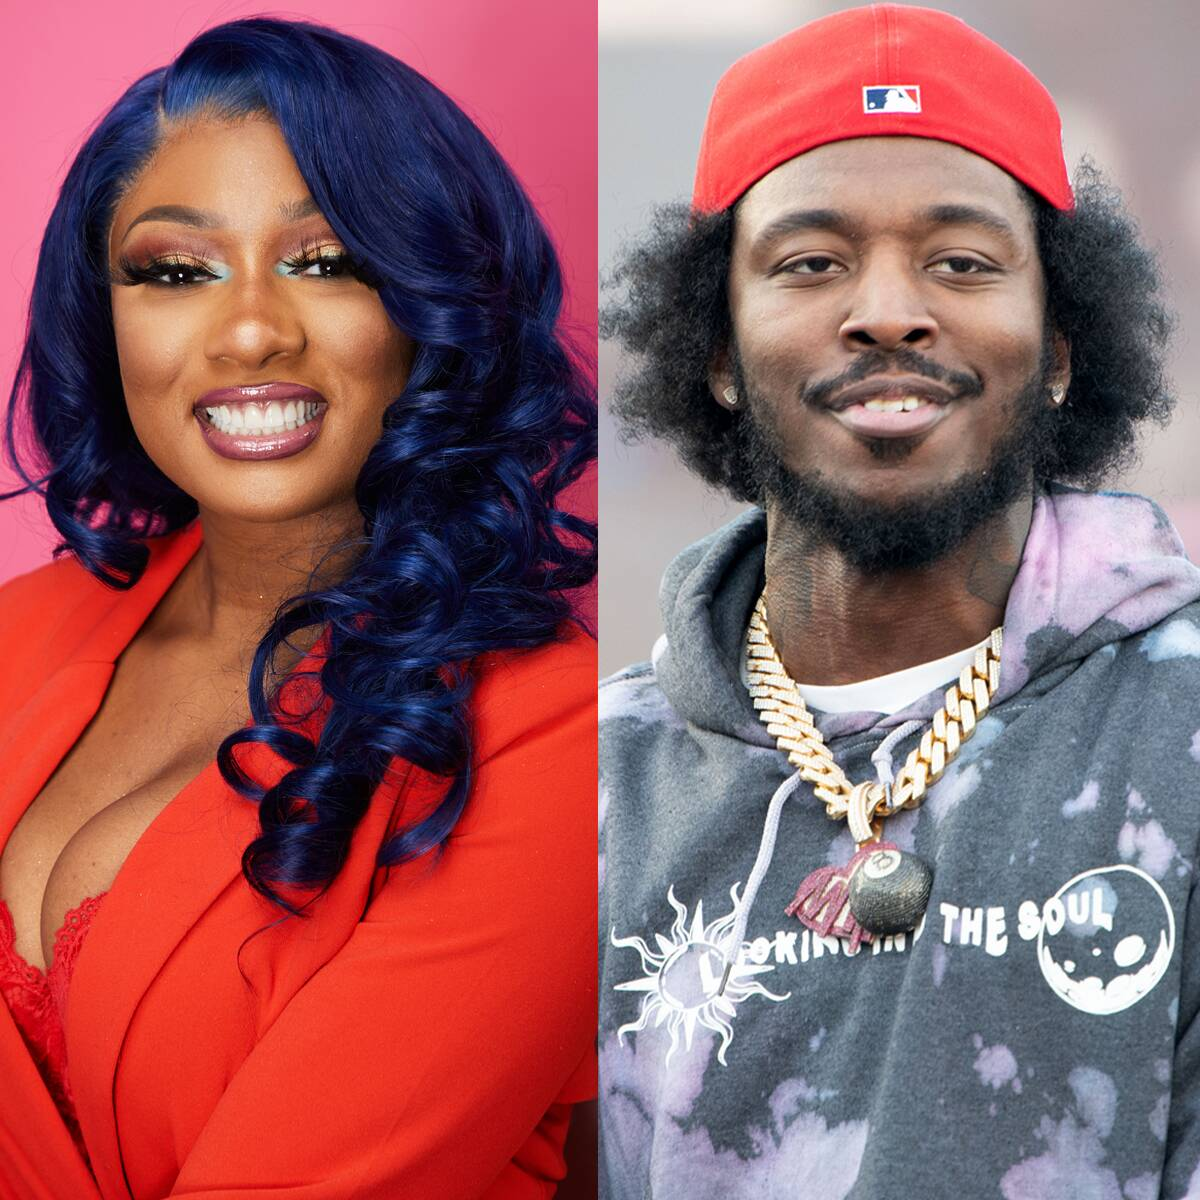 Megan Thee Stallion Confirms She's Dating Rapper Pardison Fontaine